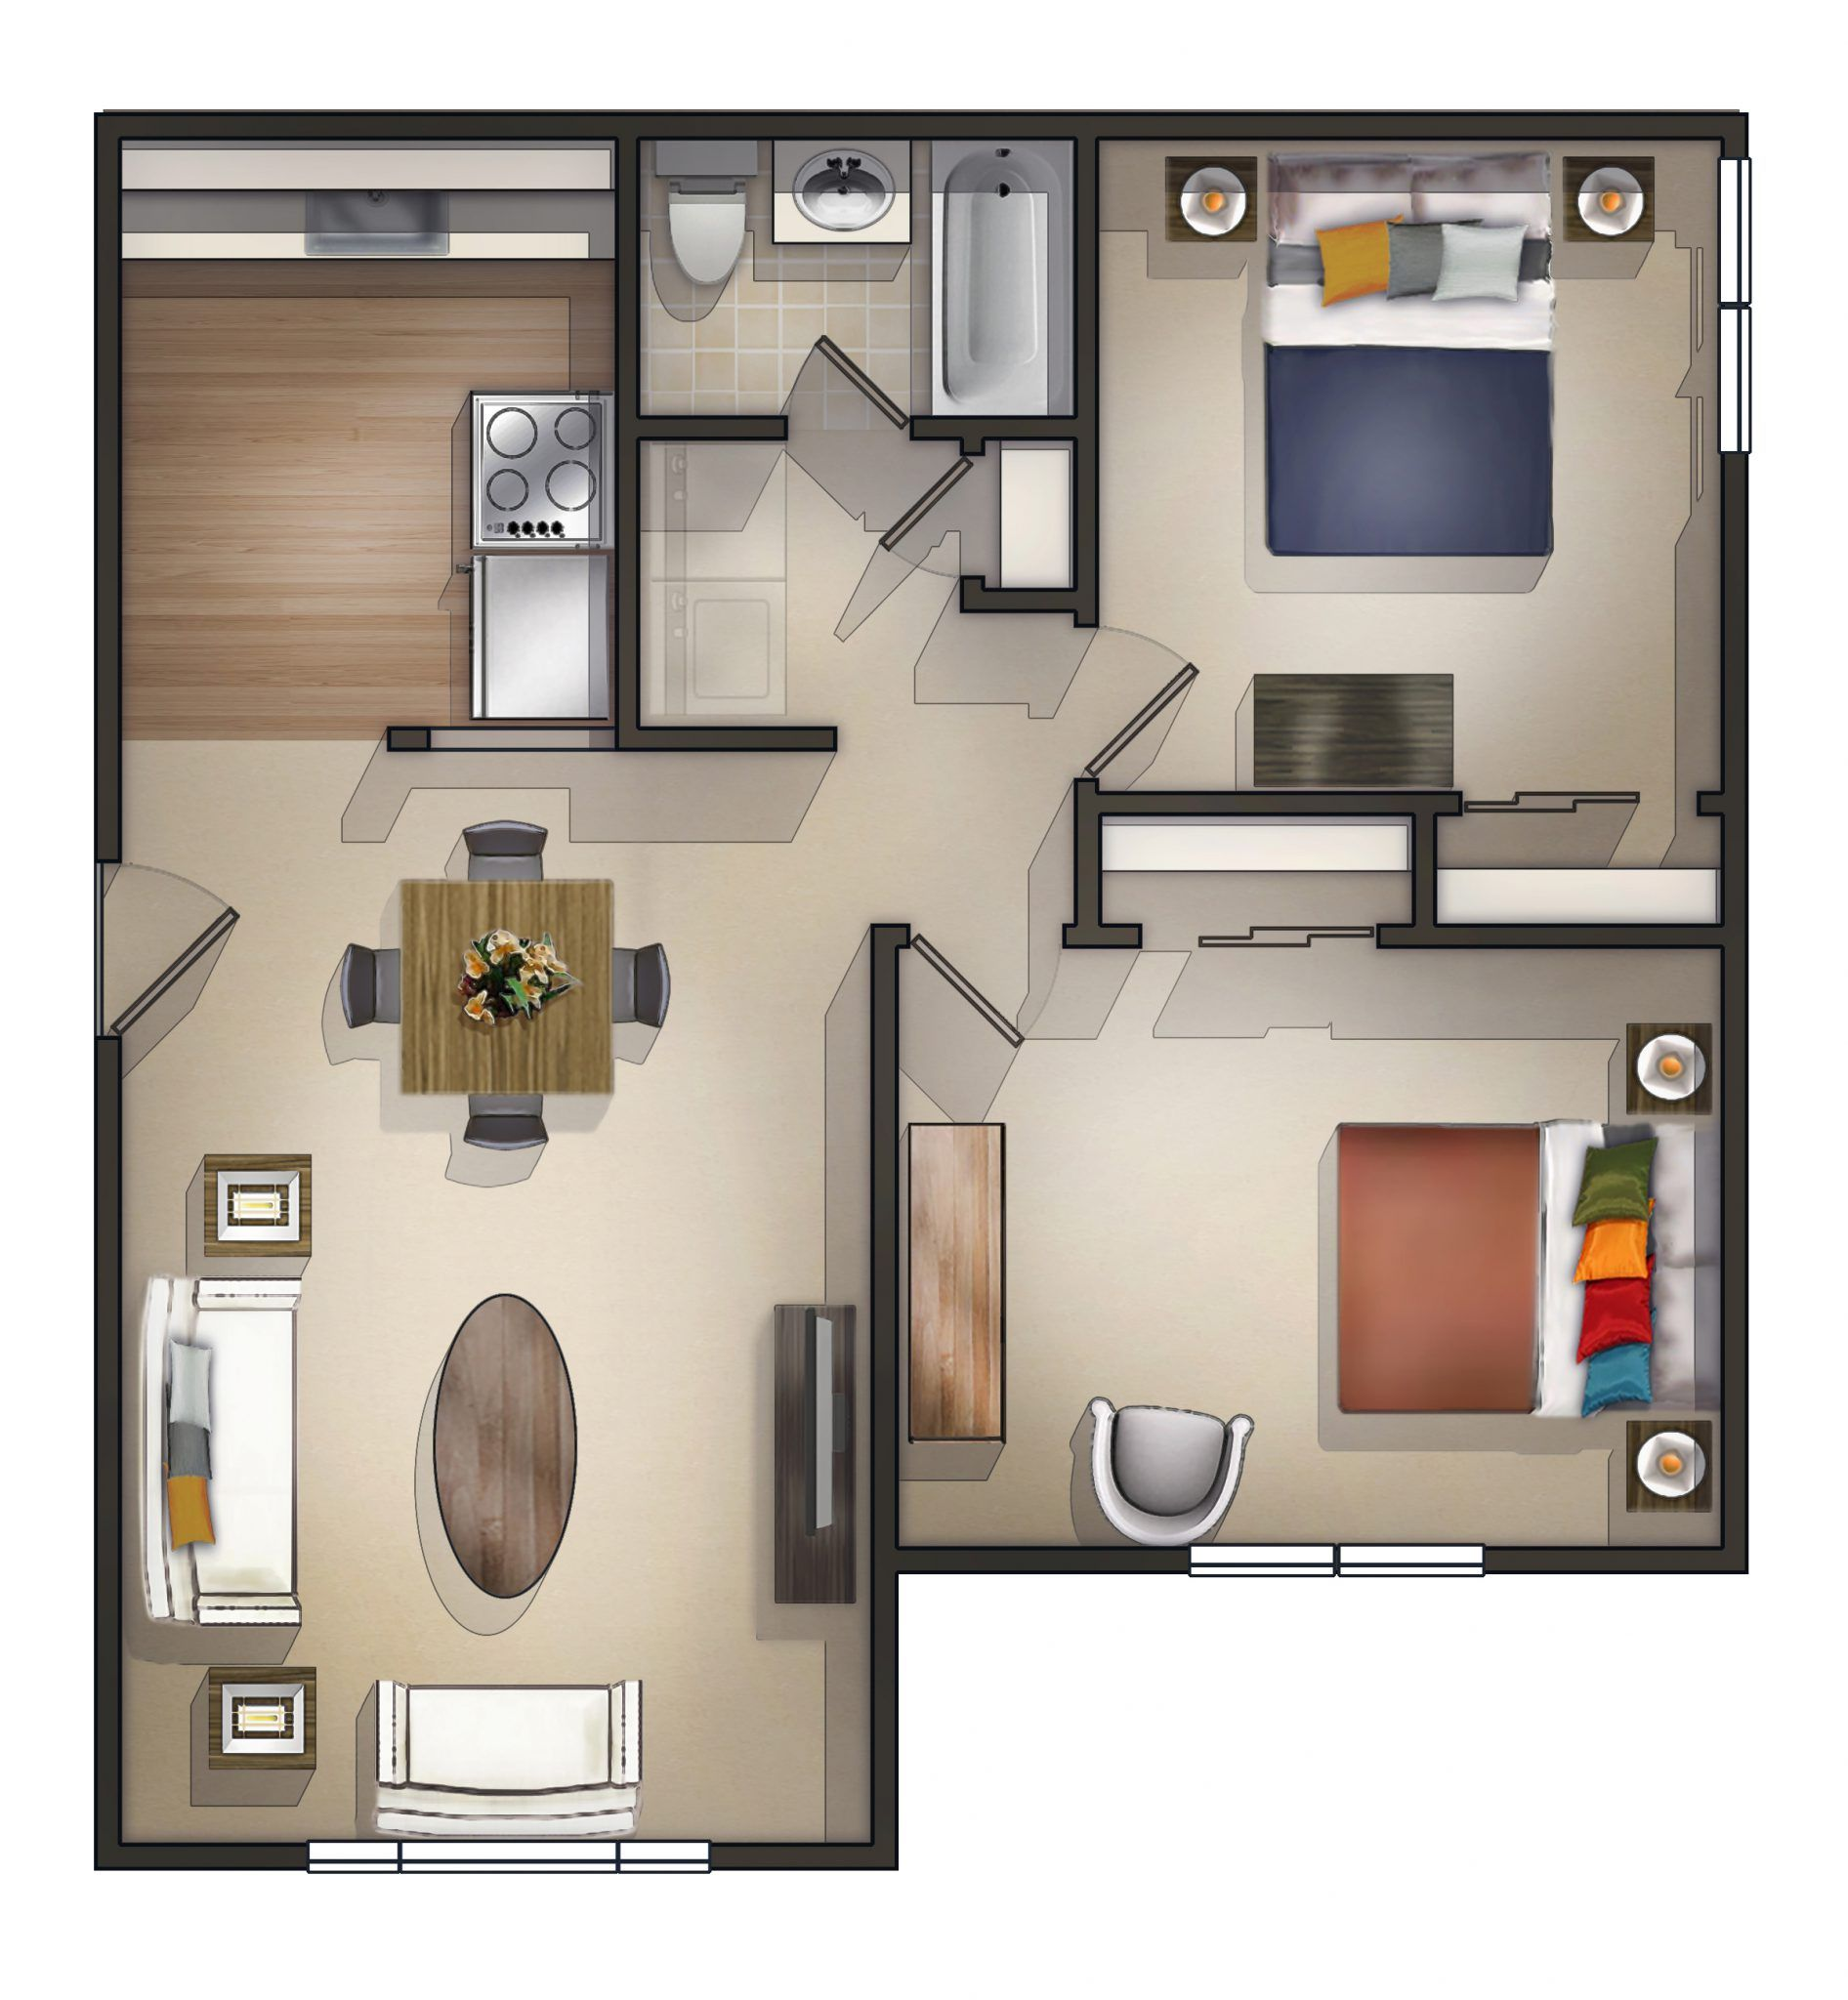 remarkable floor plan a 2 bedroom house house floor plan design ... Bedroom Apartment #apartment#design#exclusiveapartment#helpfuldesign#bedroomapartment.  perfect modern bedroom apartment floor plans with plan remarkable ...